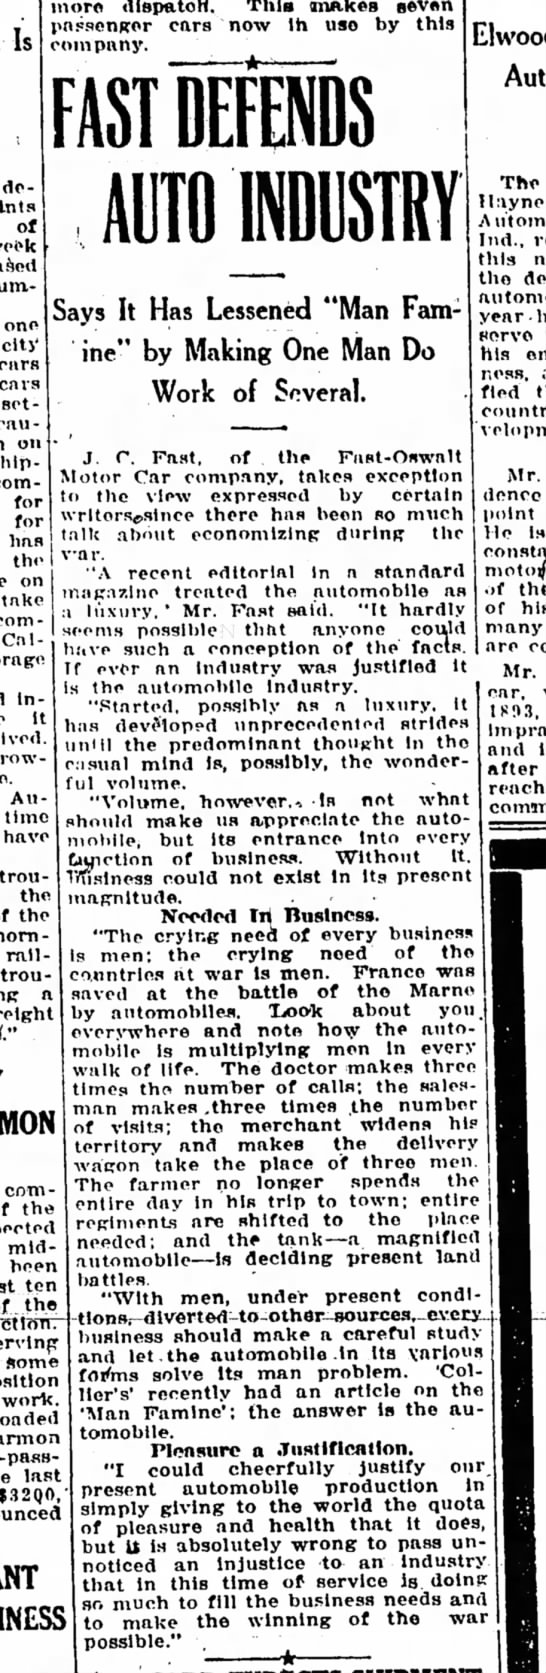 J.C. Fast defends auto industry 22 Sept 1917 -